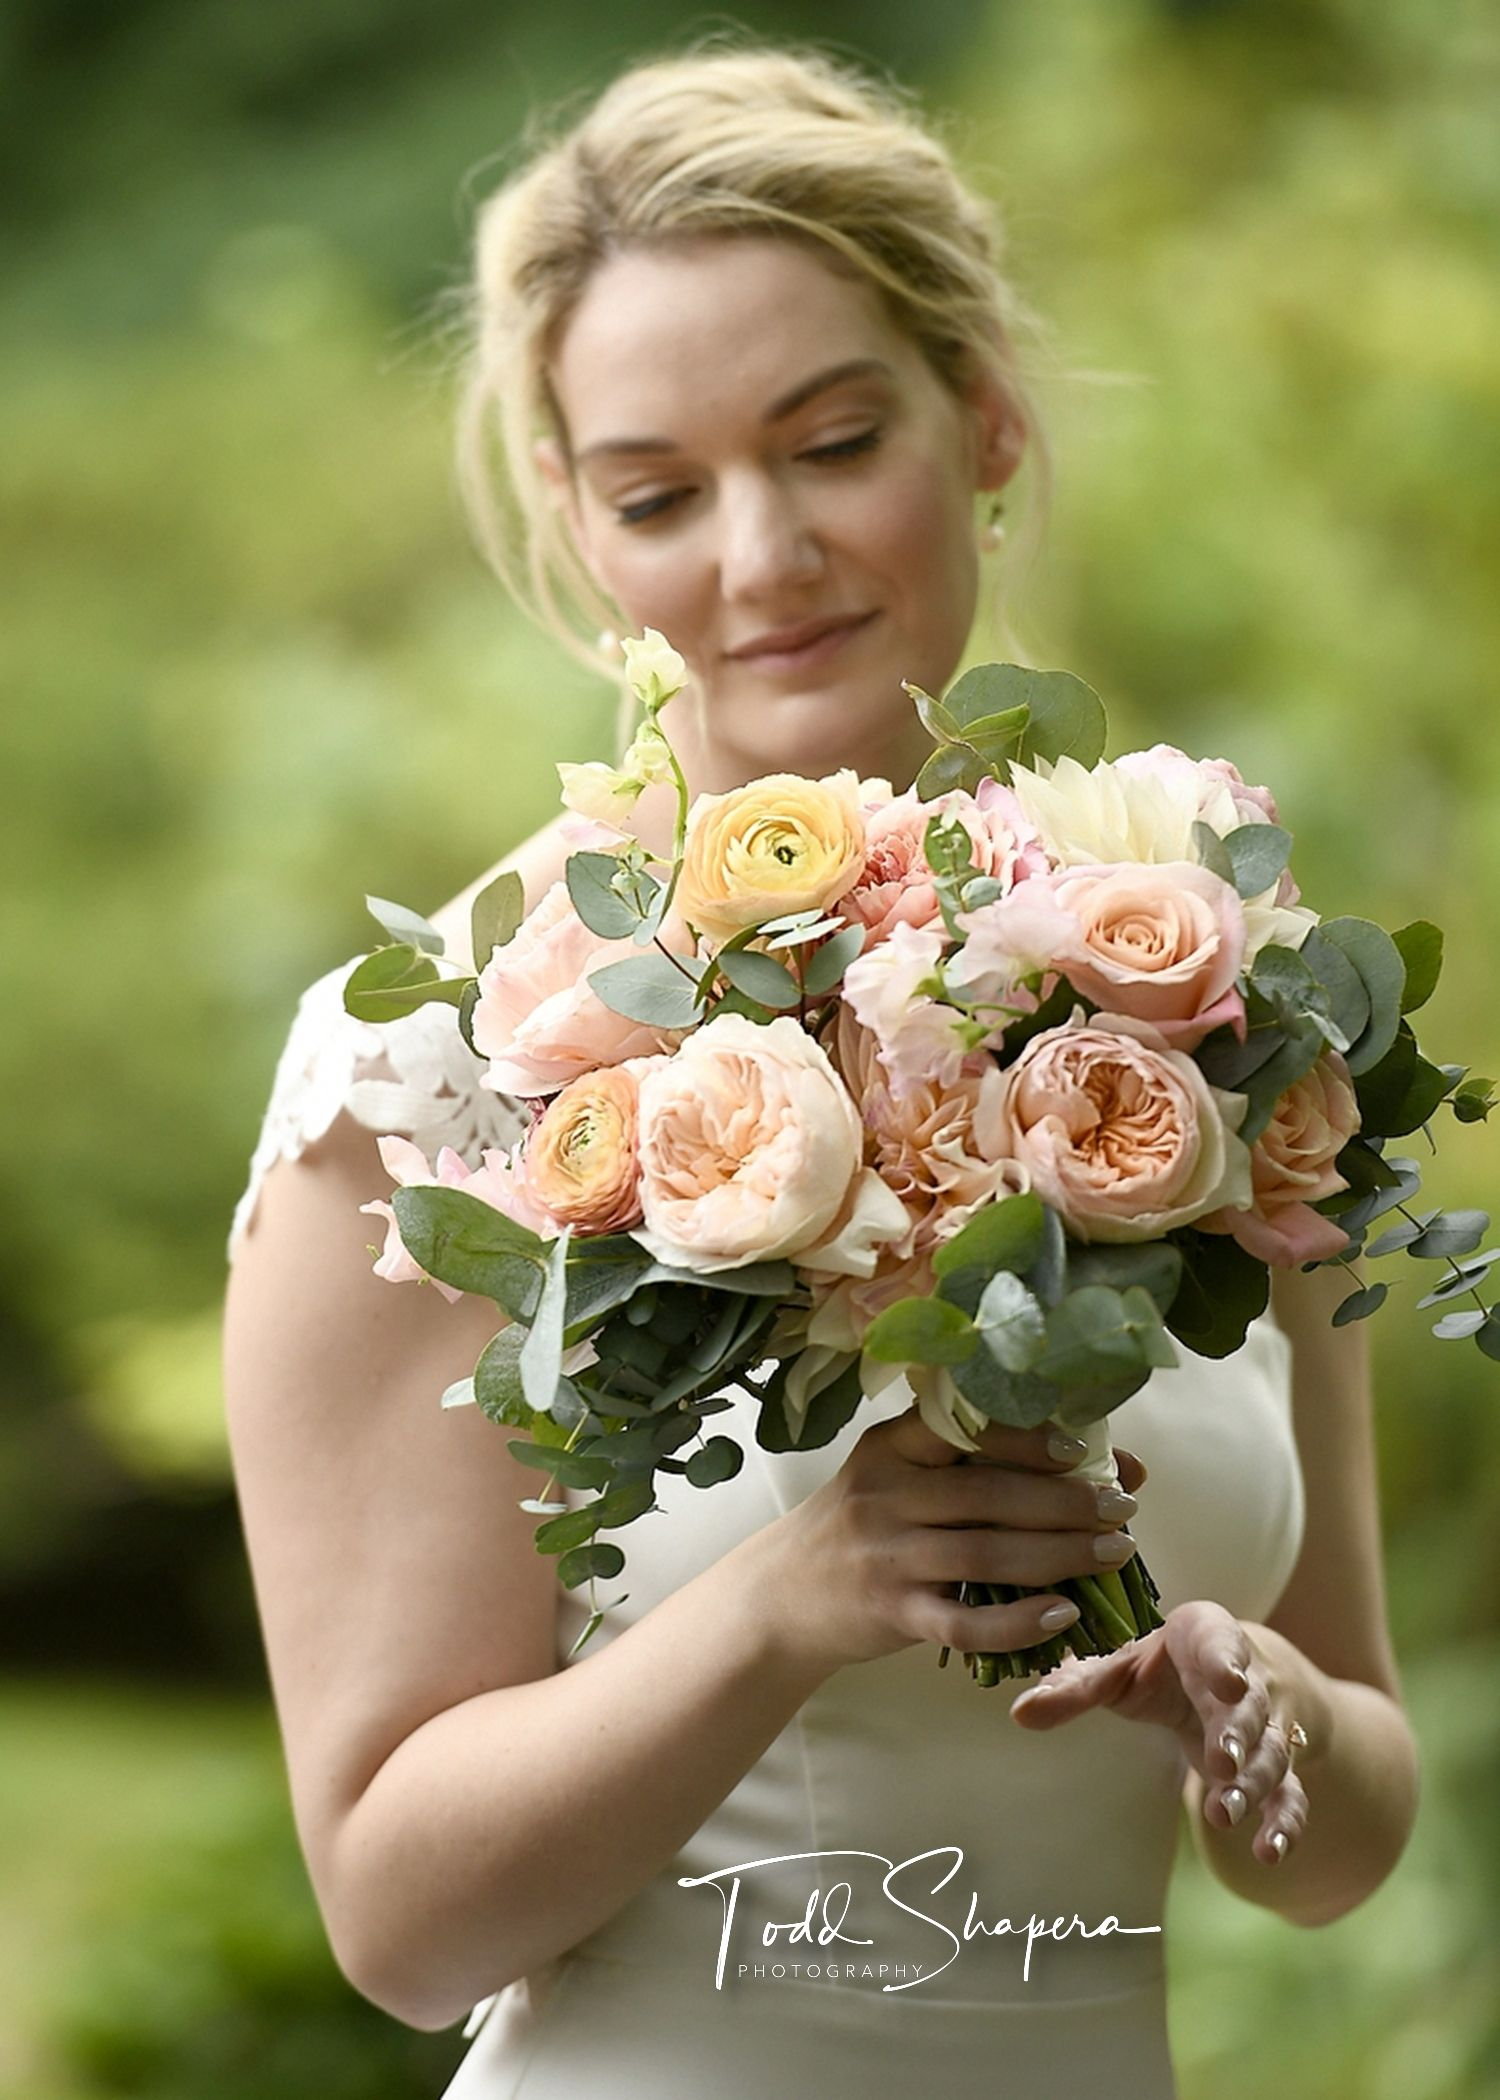 Bride And Her Bouquet Of Roses